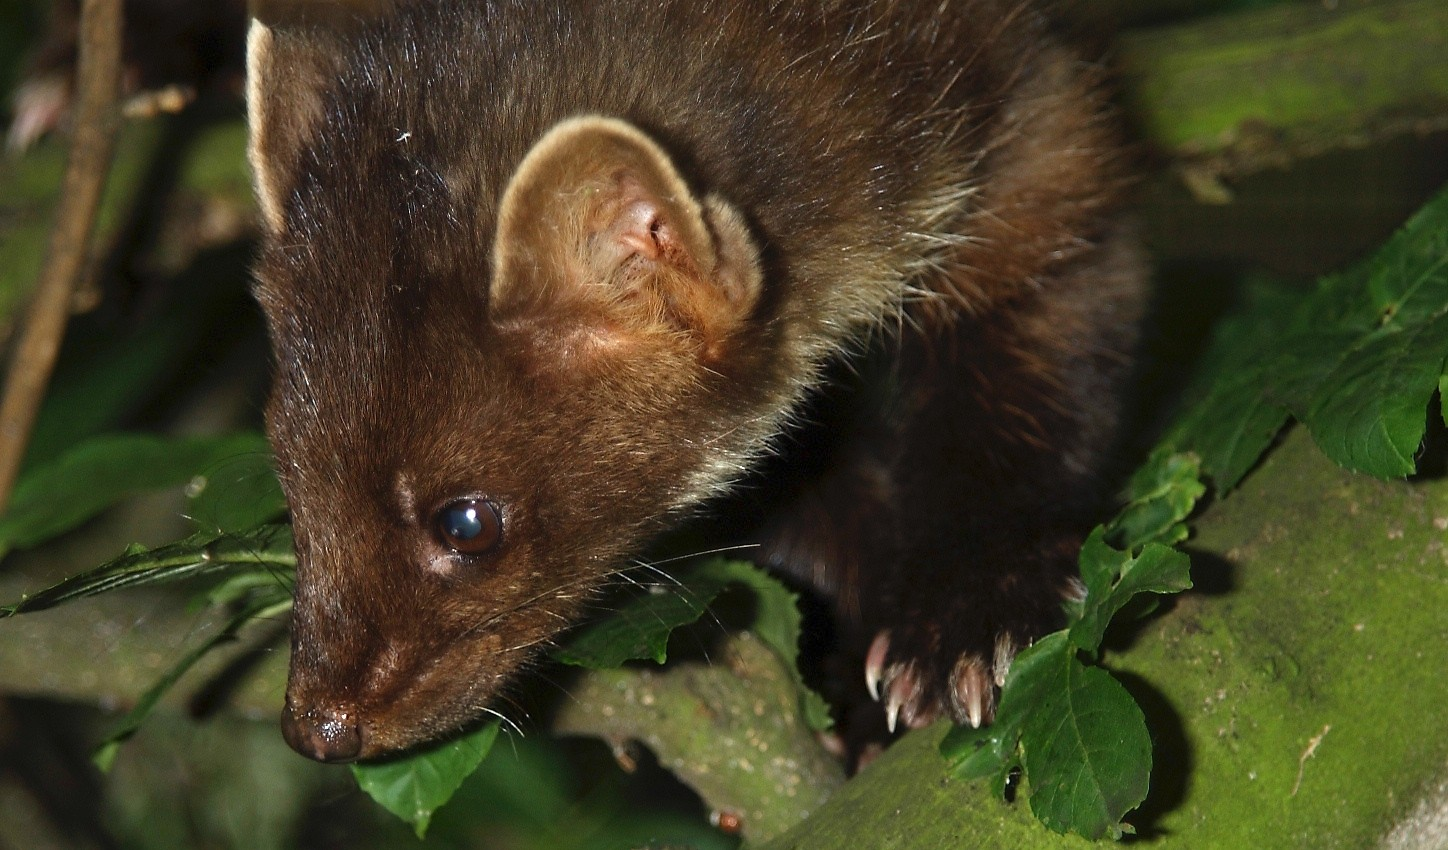 Free Pictures - Download Beautiful Photos of Wild Animals Pictures of a pine marten